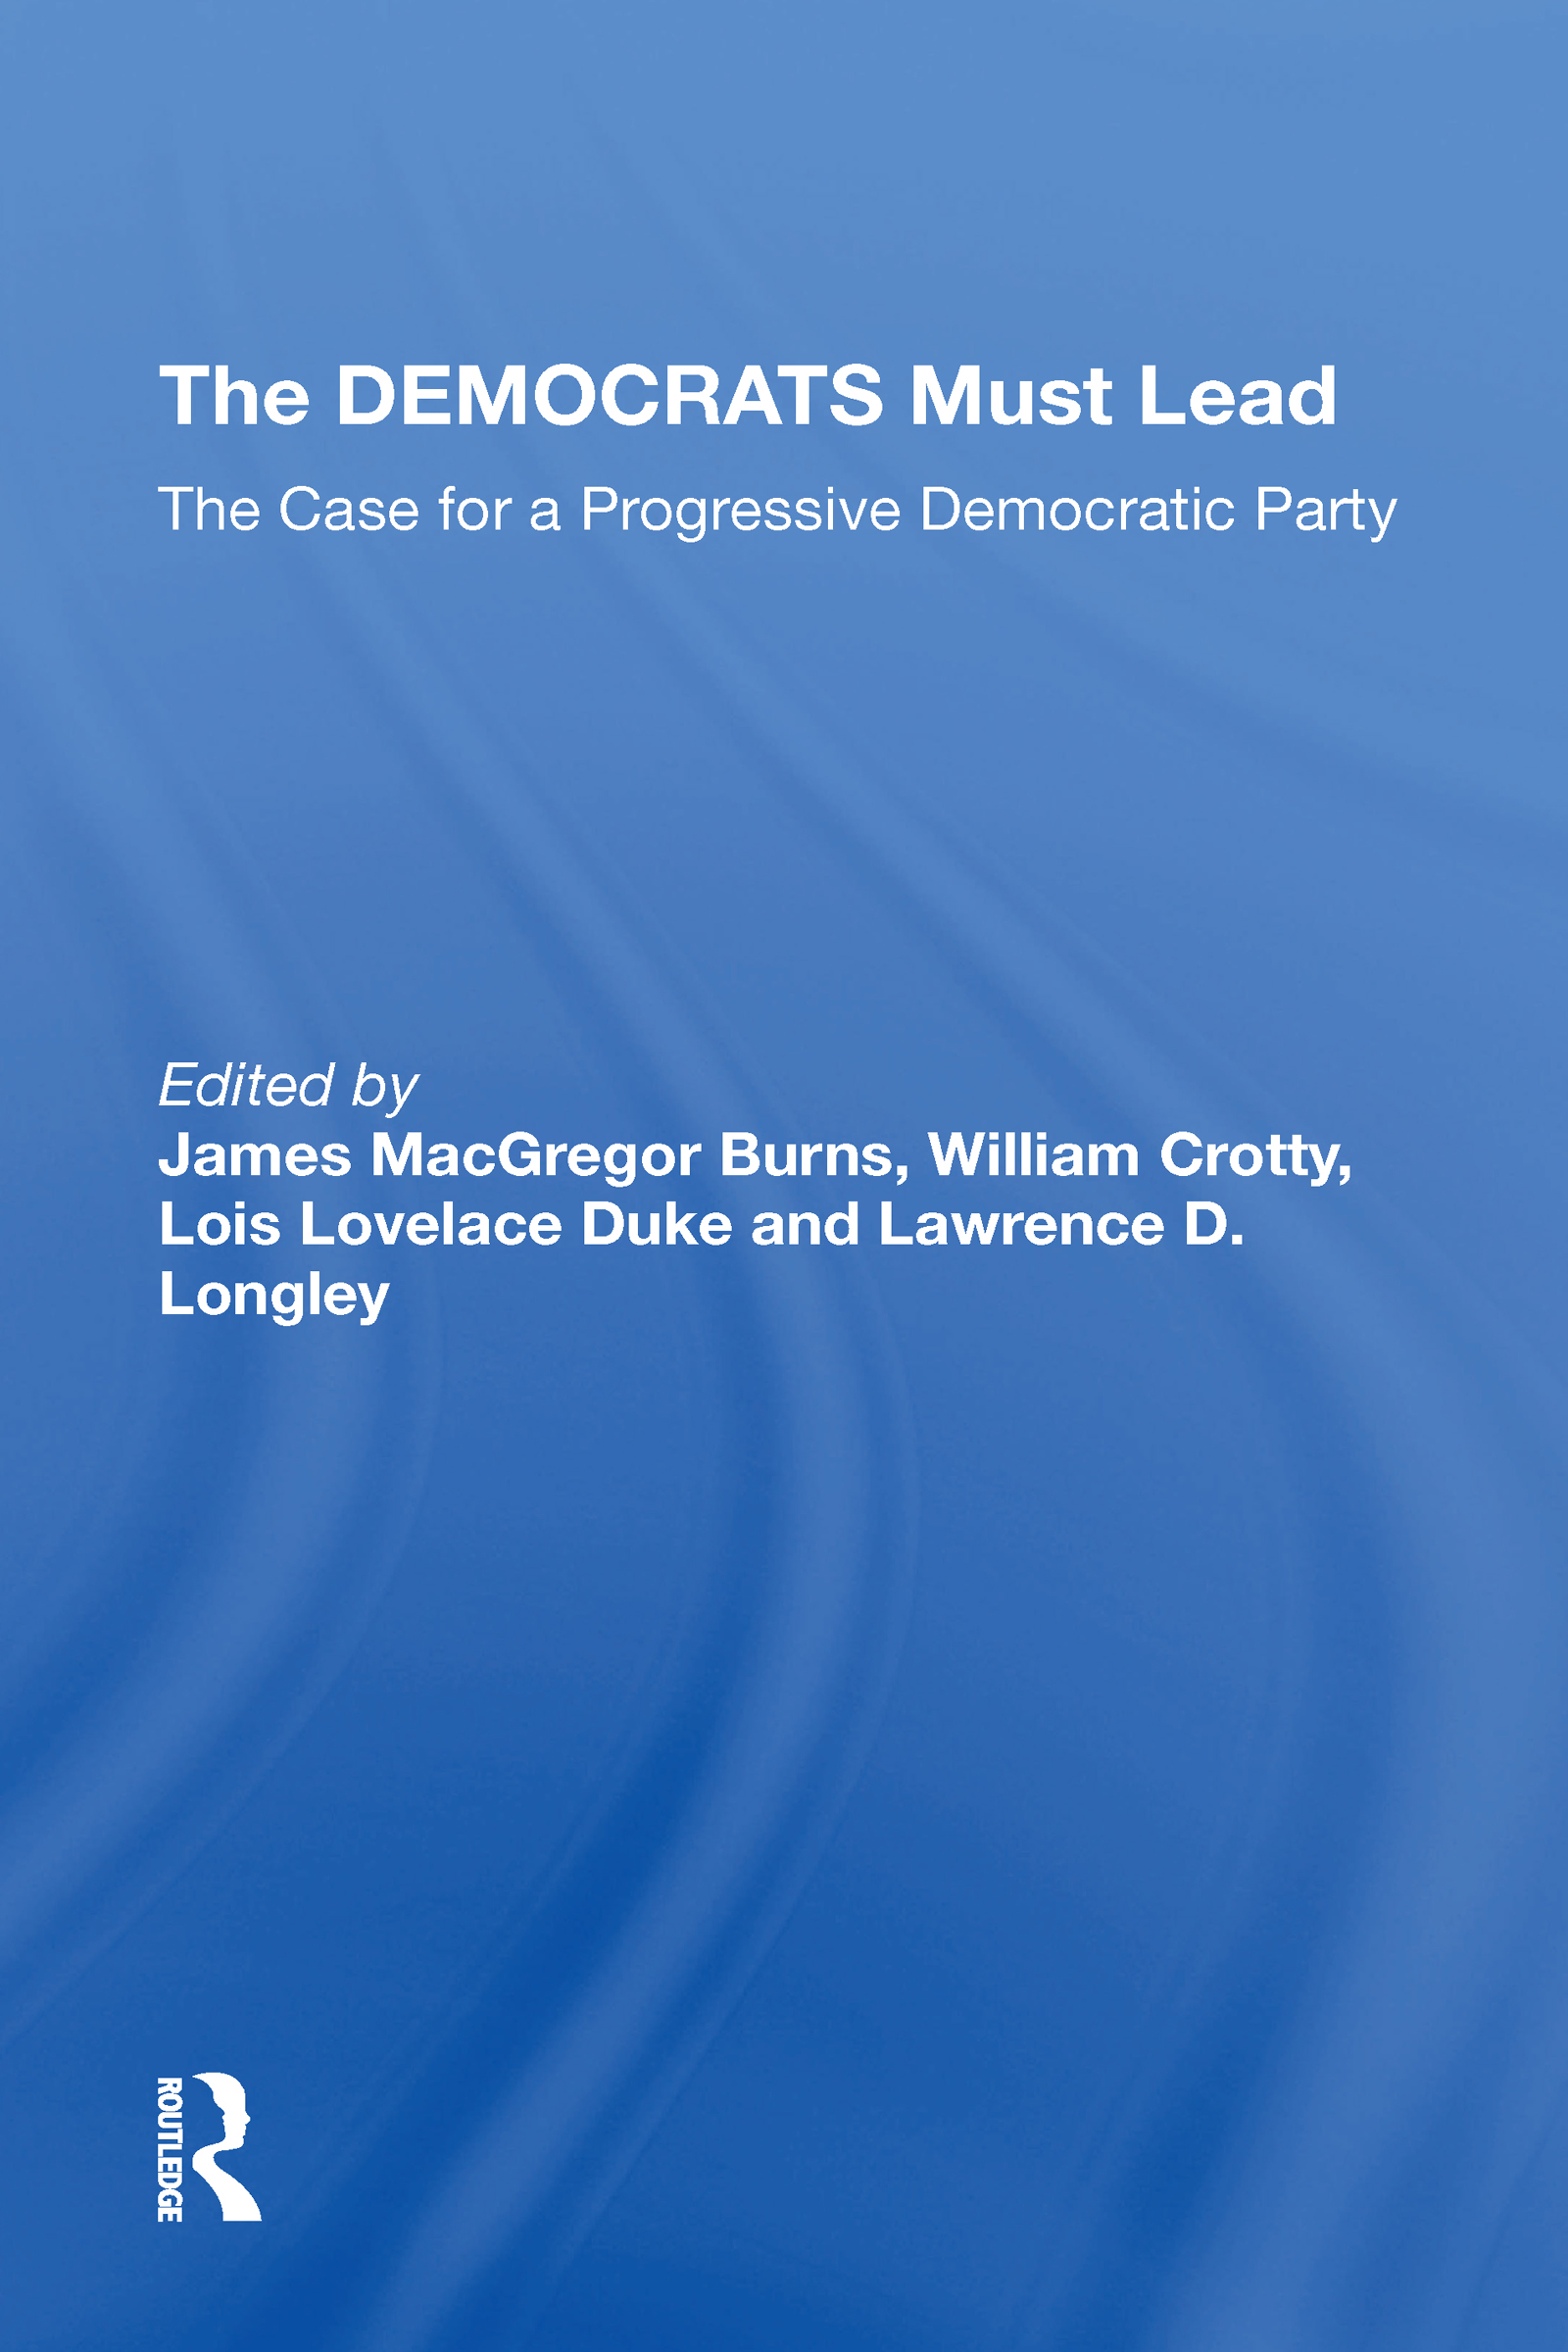 The Democrats Must Lead